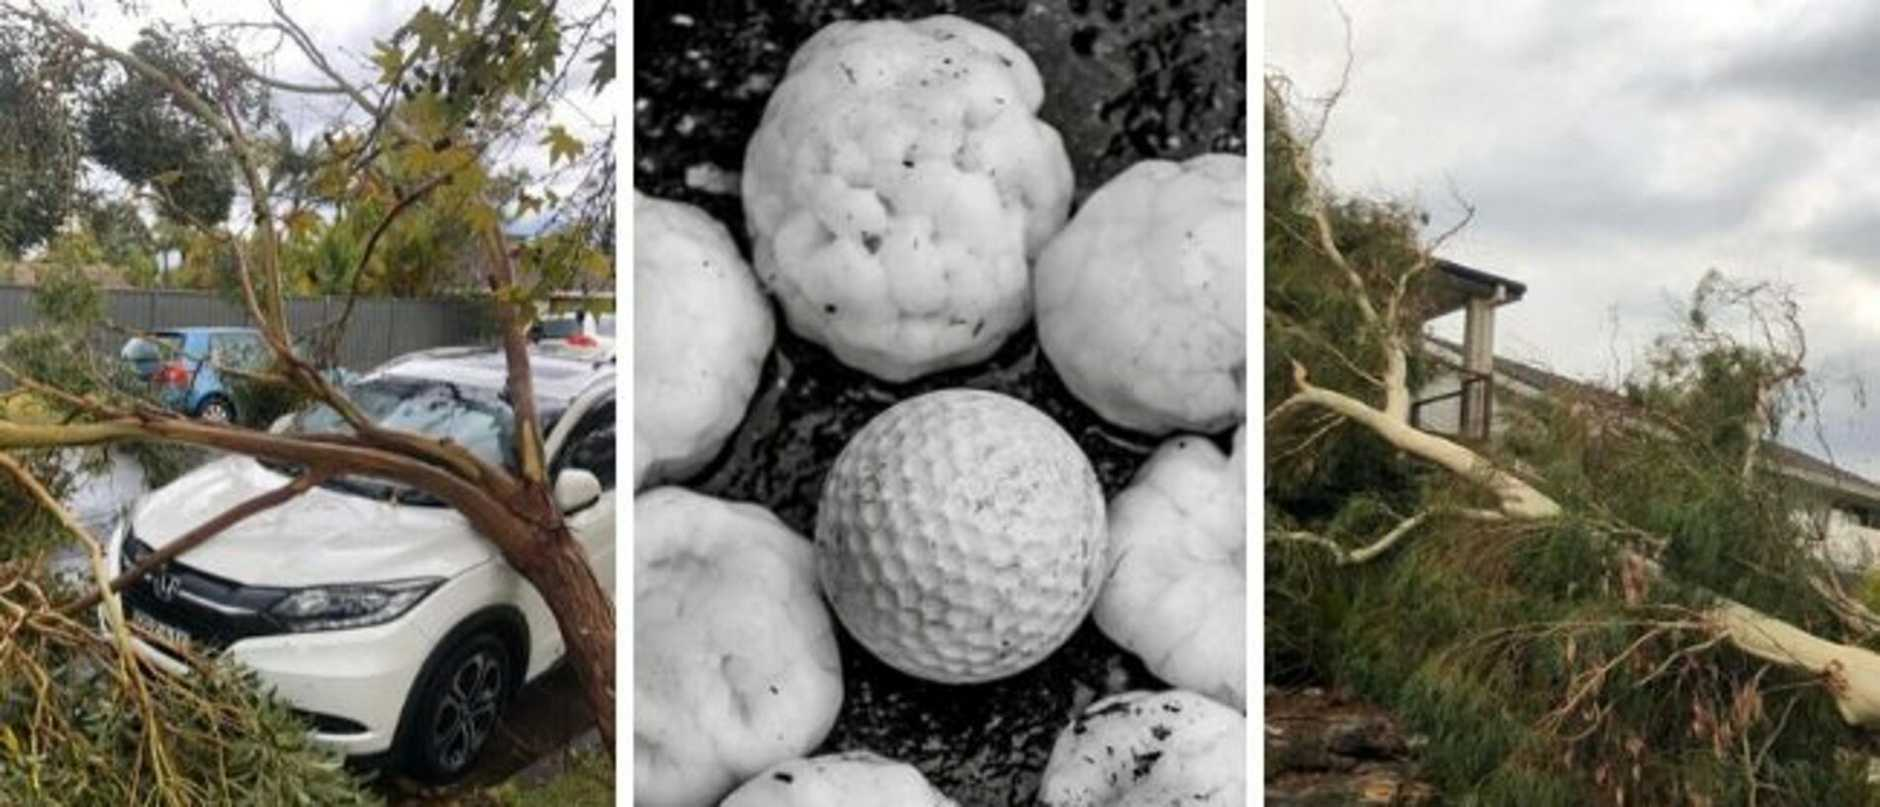 southern sydney smashed by storms hail overnight